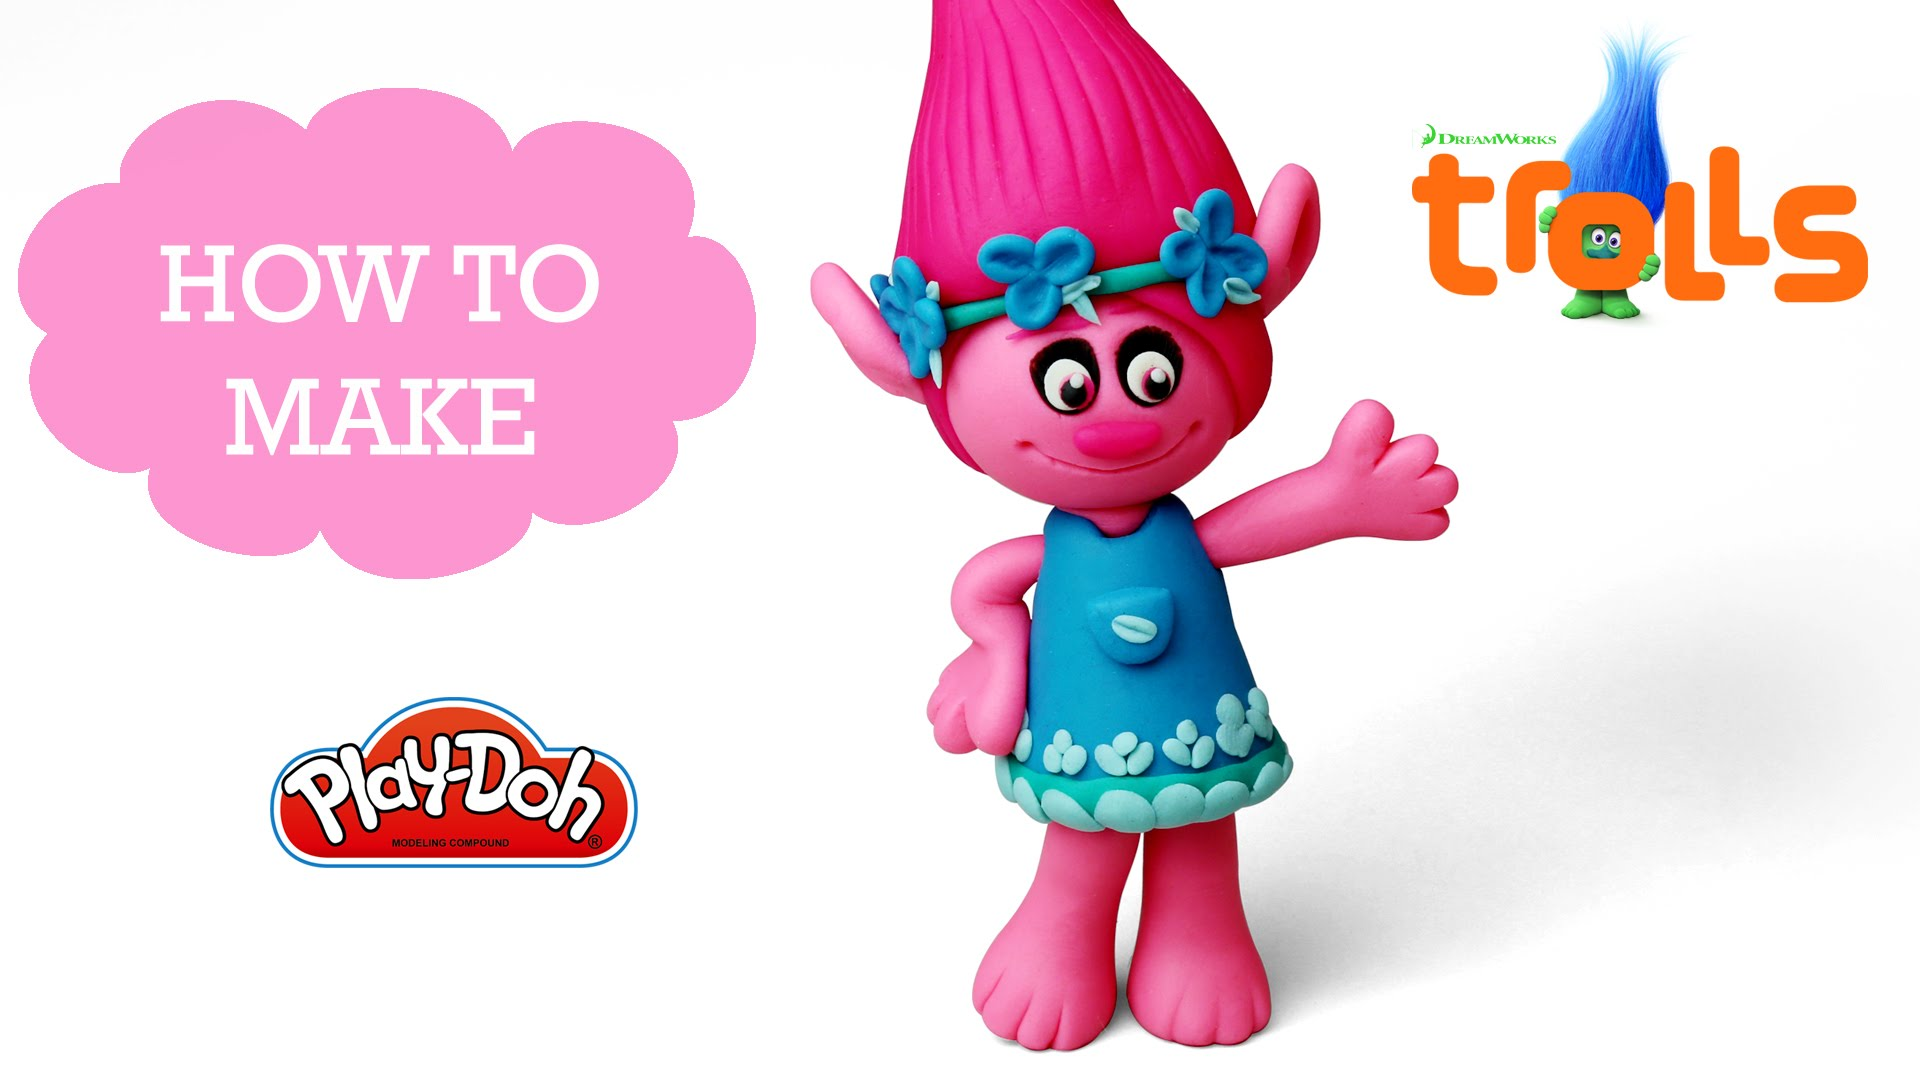 Trolls clipart poppy. Making pencil and in